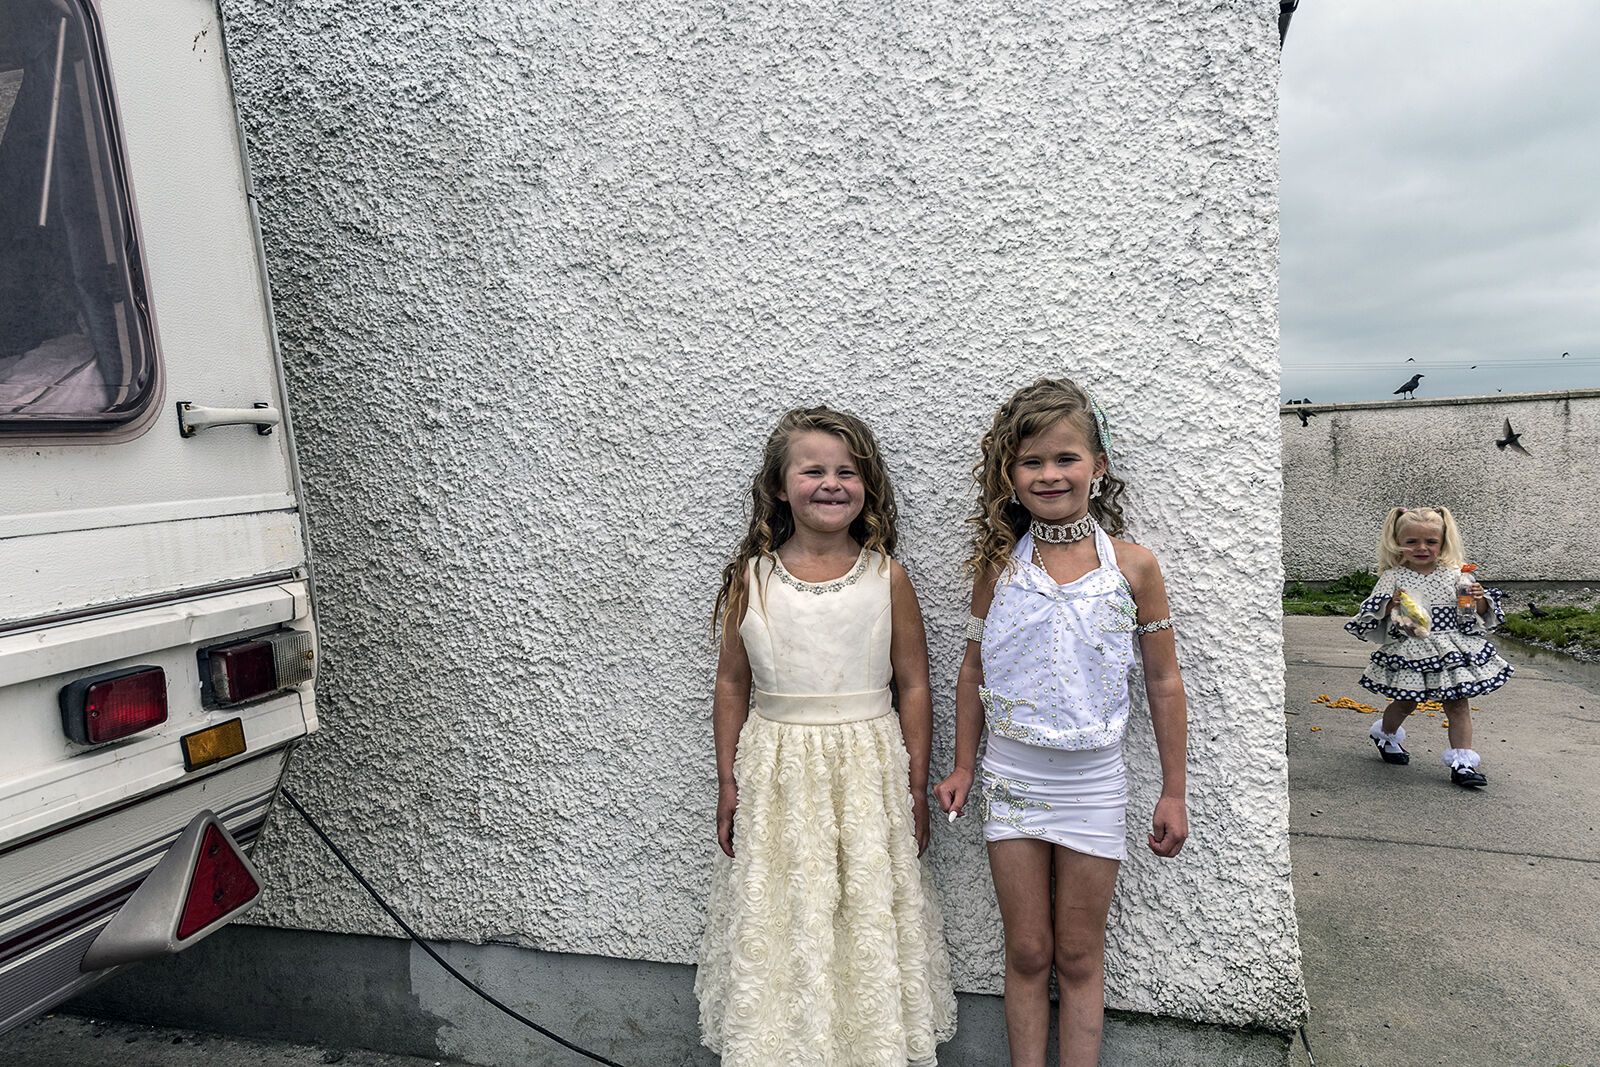 Reilly Sisters, Cashel, Tipperary 2019